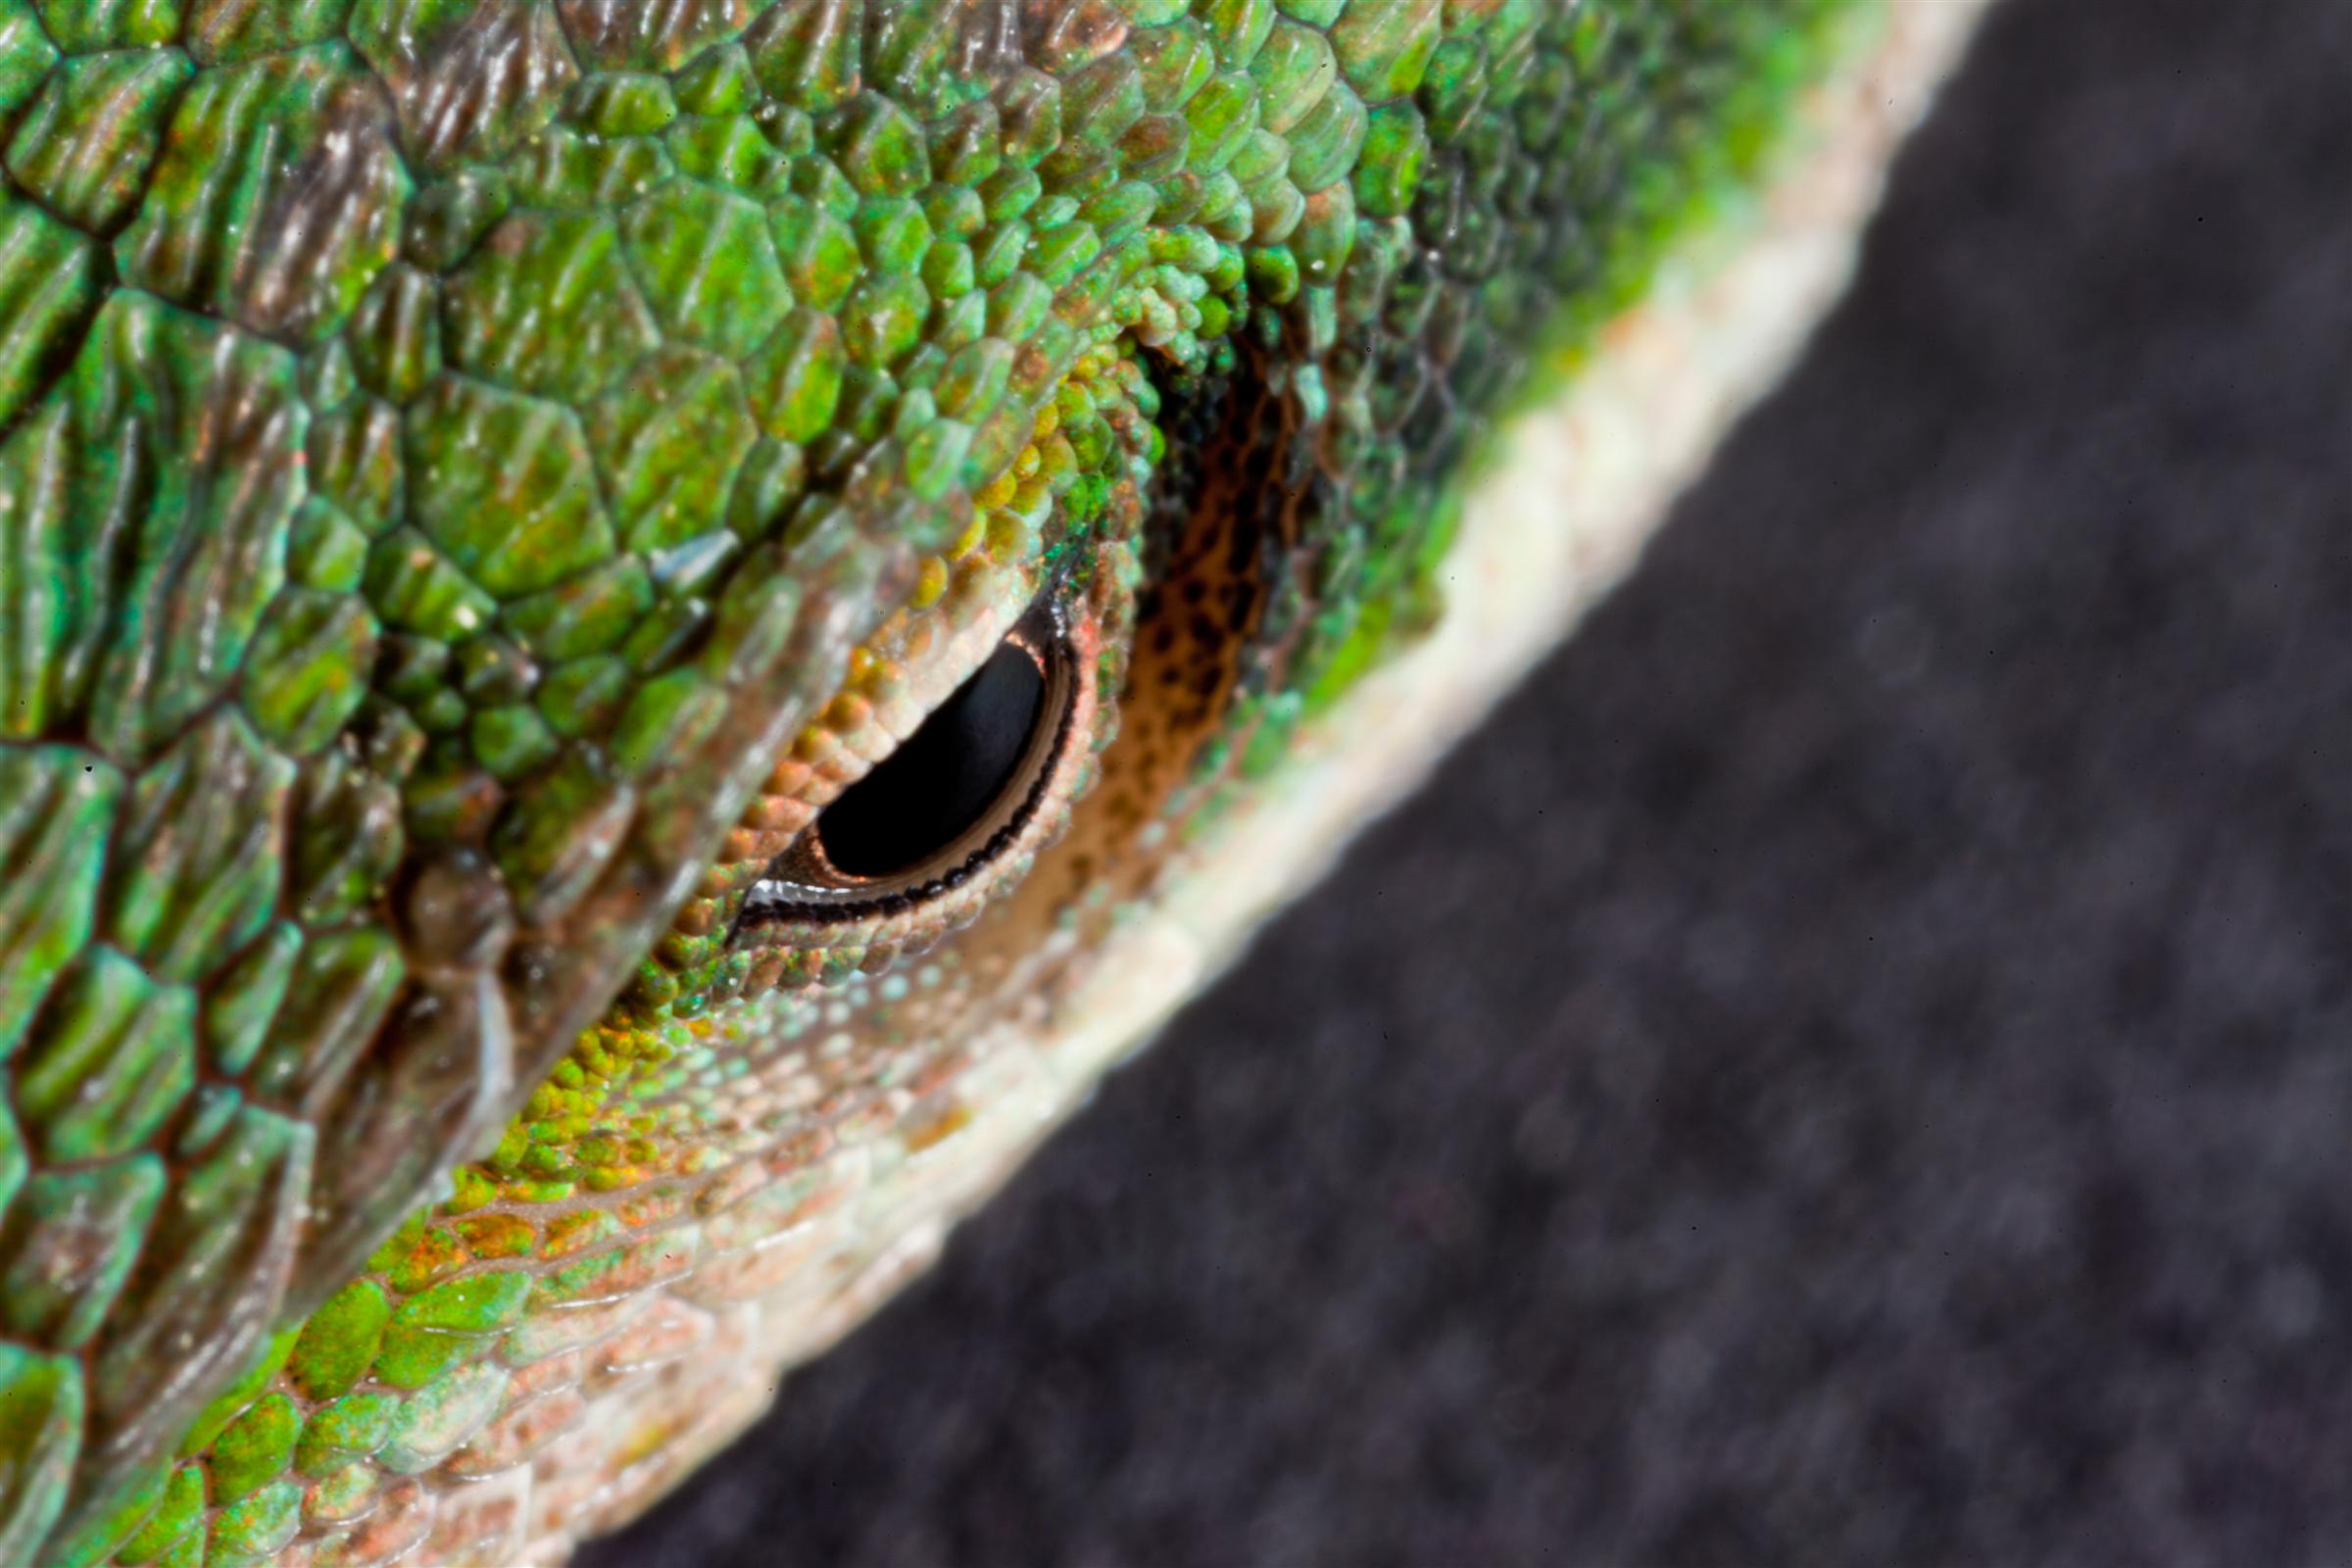 Lizard Eye, Reptile, Lizard, Eye, HQ Photo